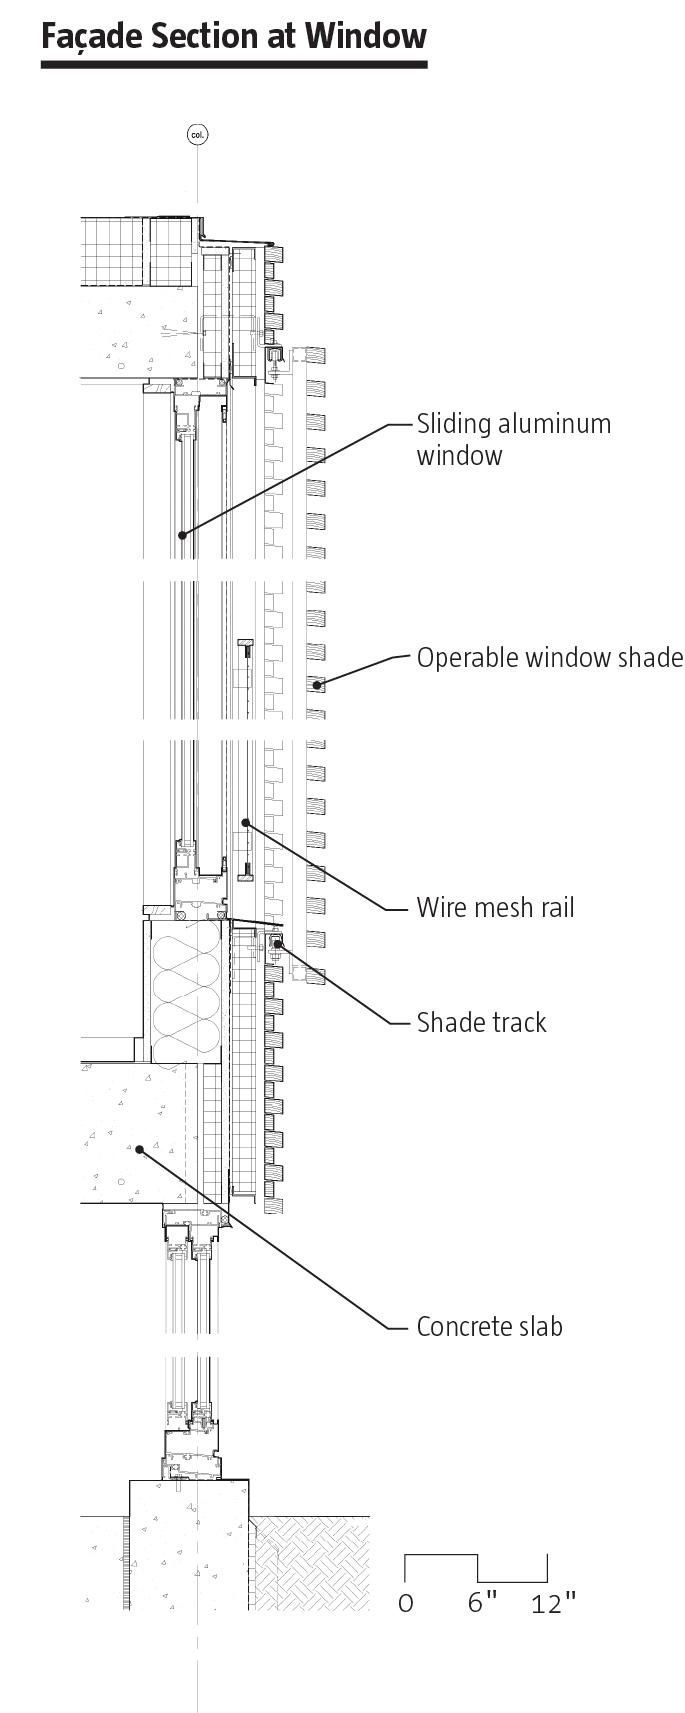 Facade Section at Window Housing Tower at Kripalu Center